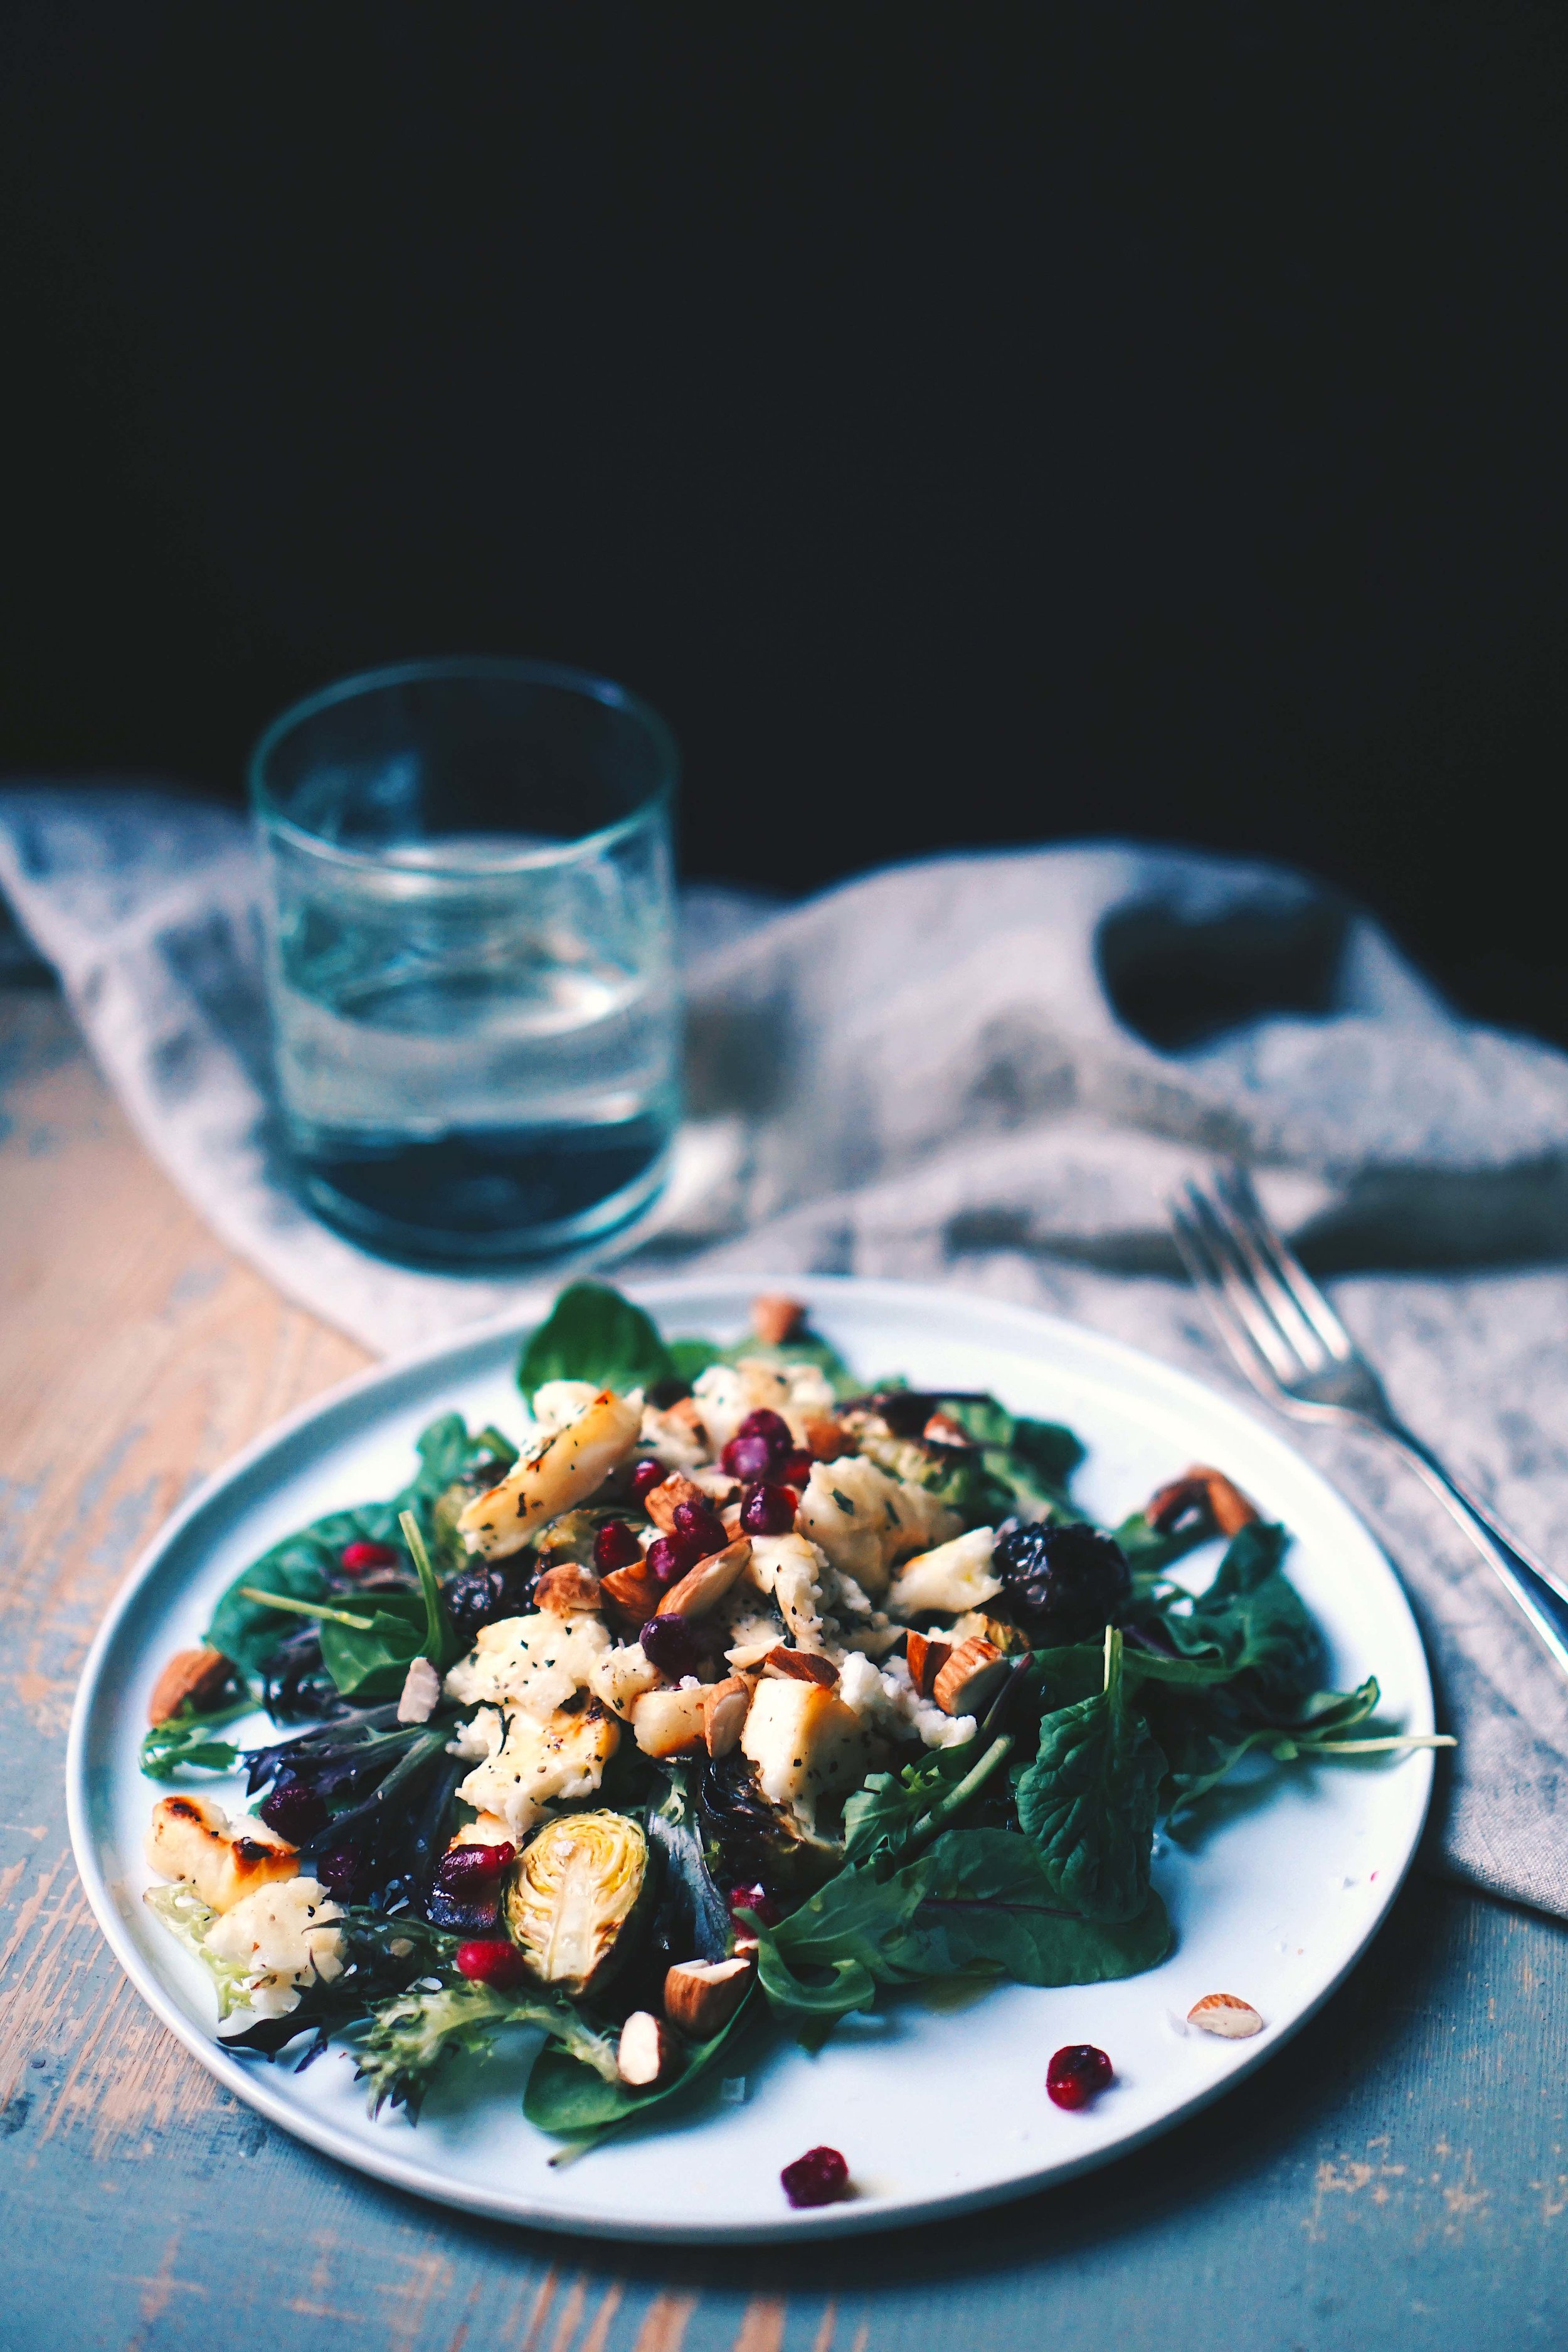 Combine a glass of water with your salad and you're good to go.